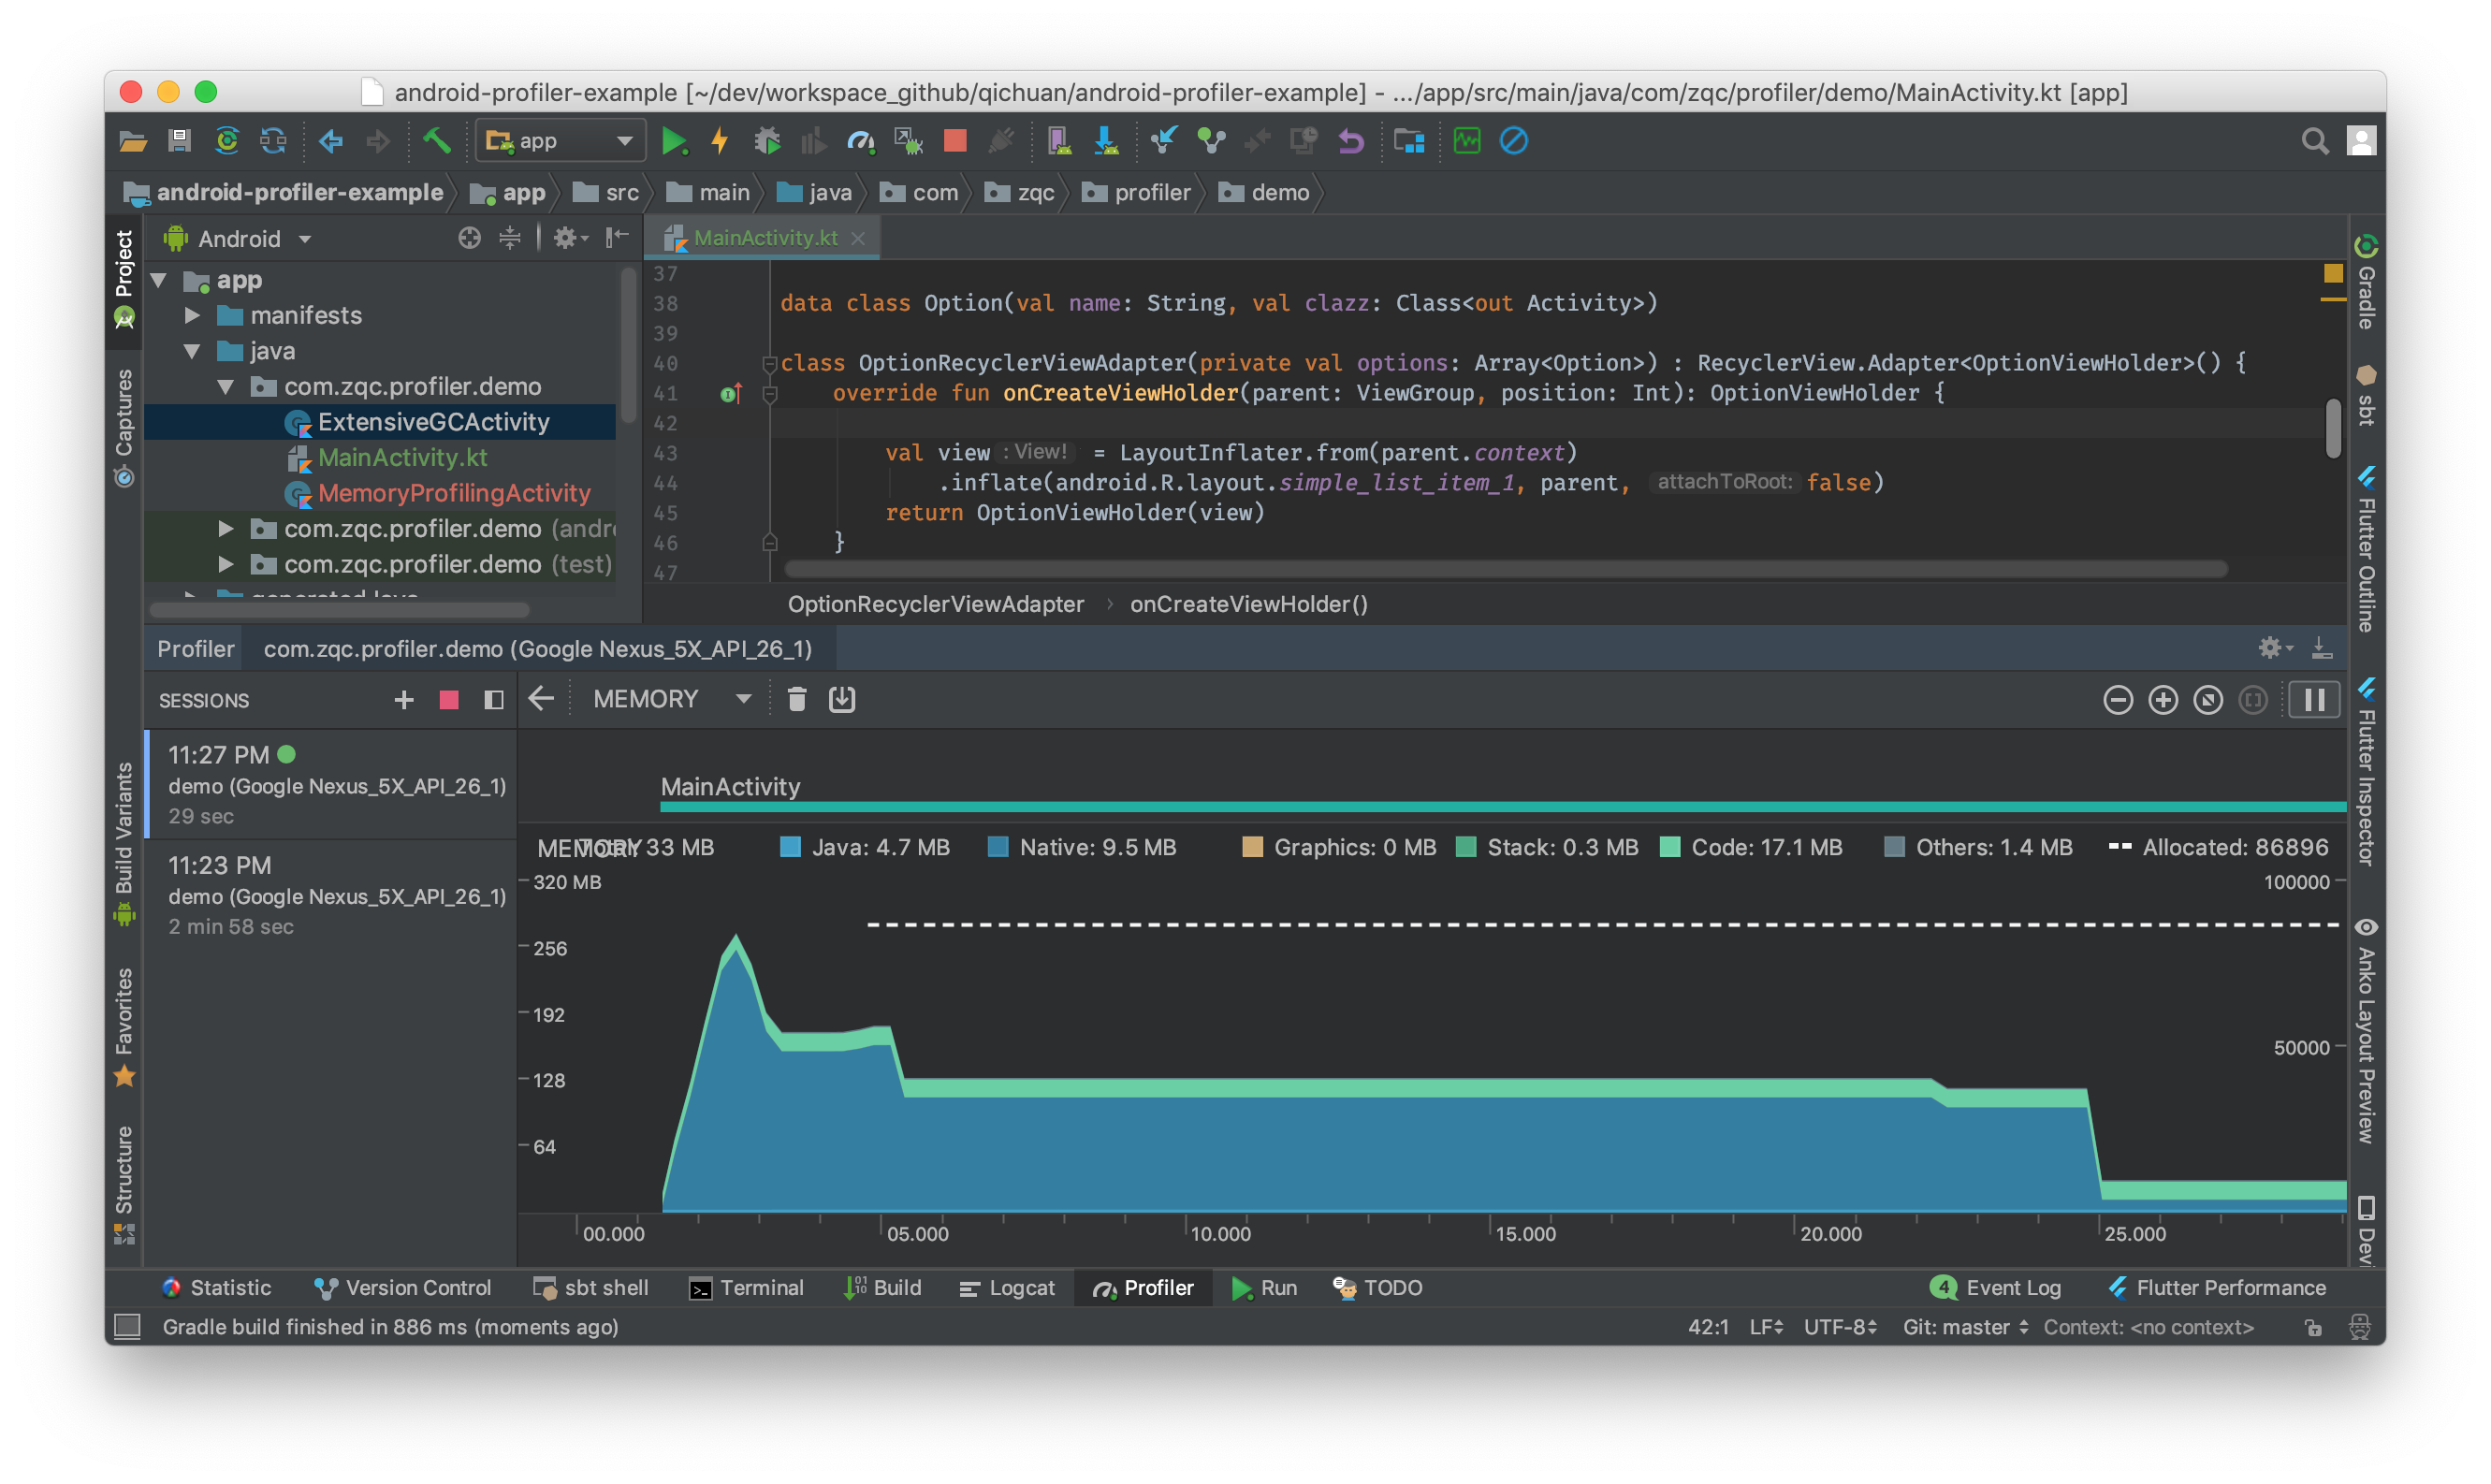 Profiling your app with Android Studio - Heartbeat